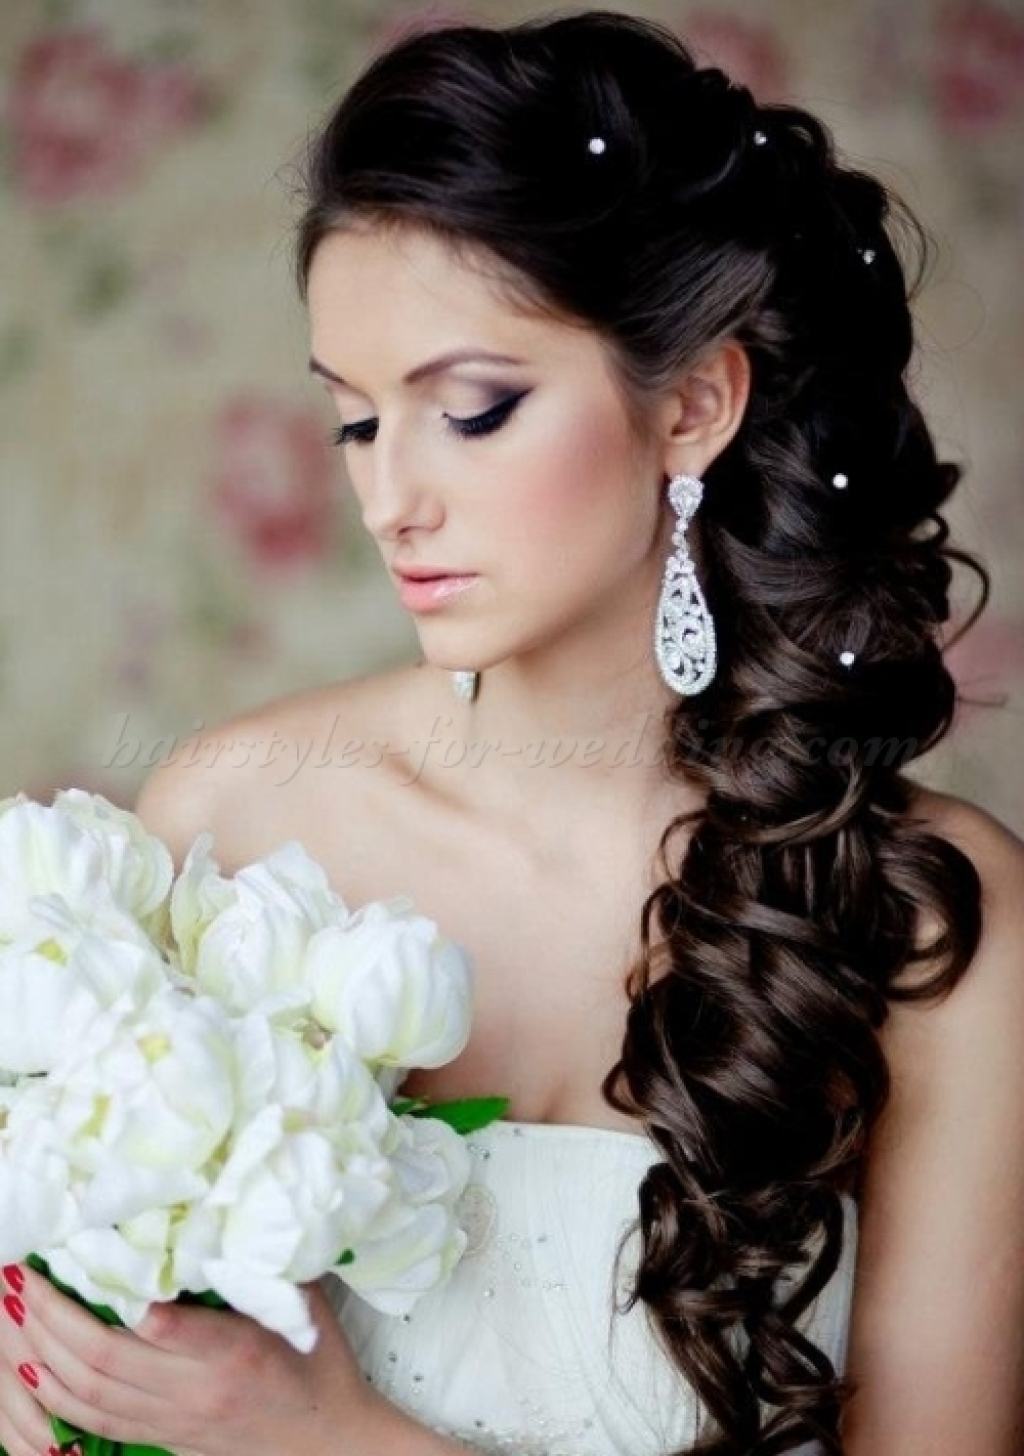 2018 Wedding Hairstyles For Long Hair To The Side Throughout Wedding Hairstyles Long – Hairstyle For Women & Man (View 3 of 15)